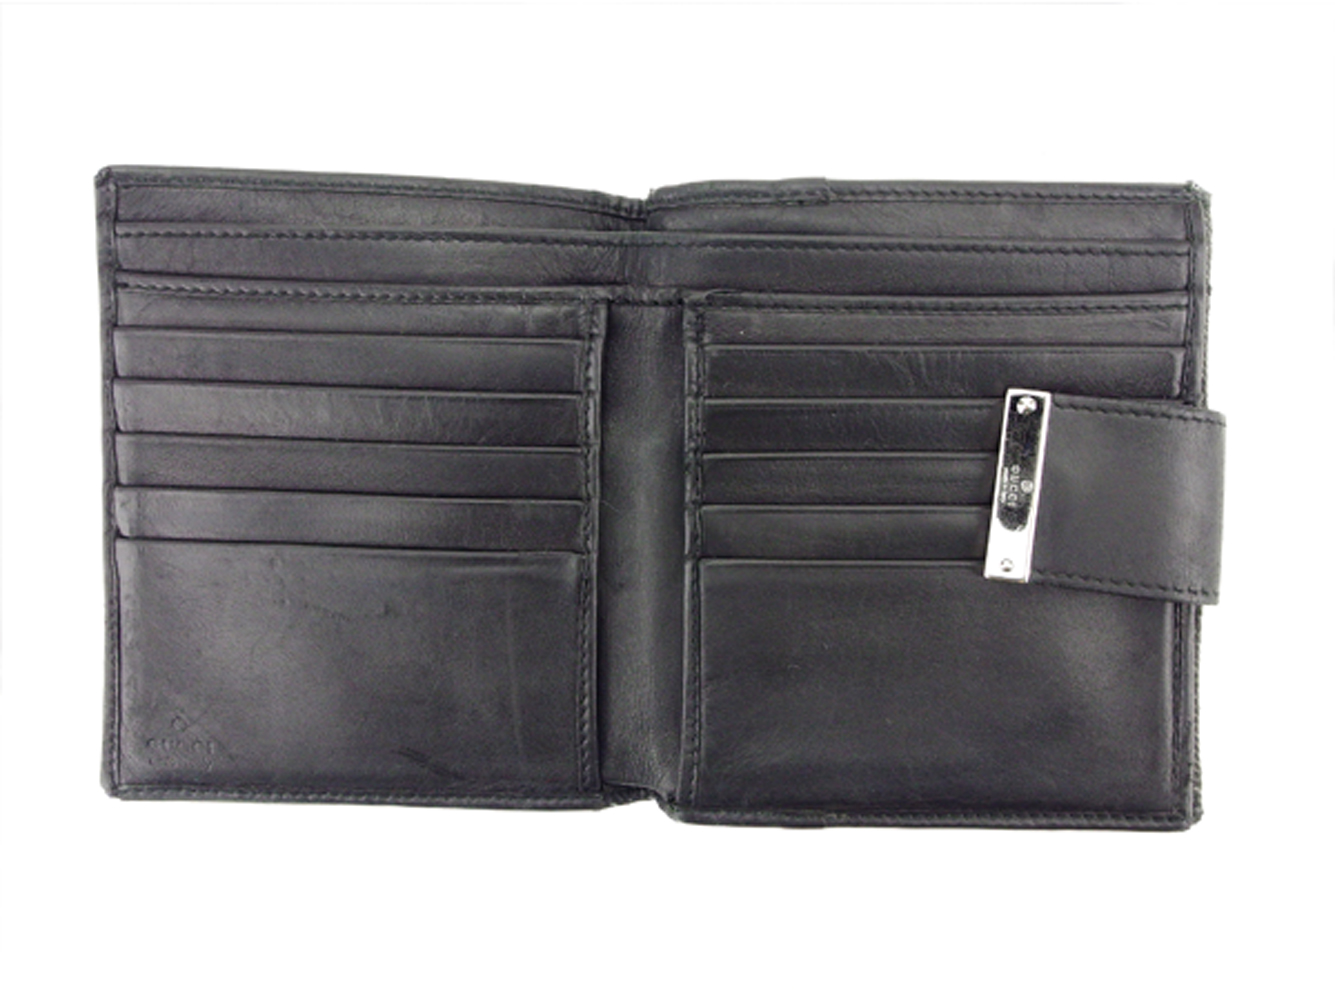 8a42f6c0dc81 Gucci Wallet Mens Japan | Stanford Center for Opportunity Policy in ...